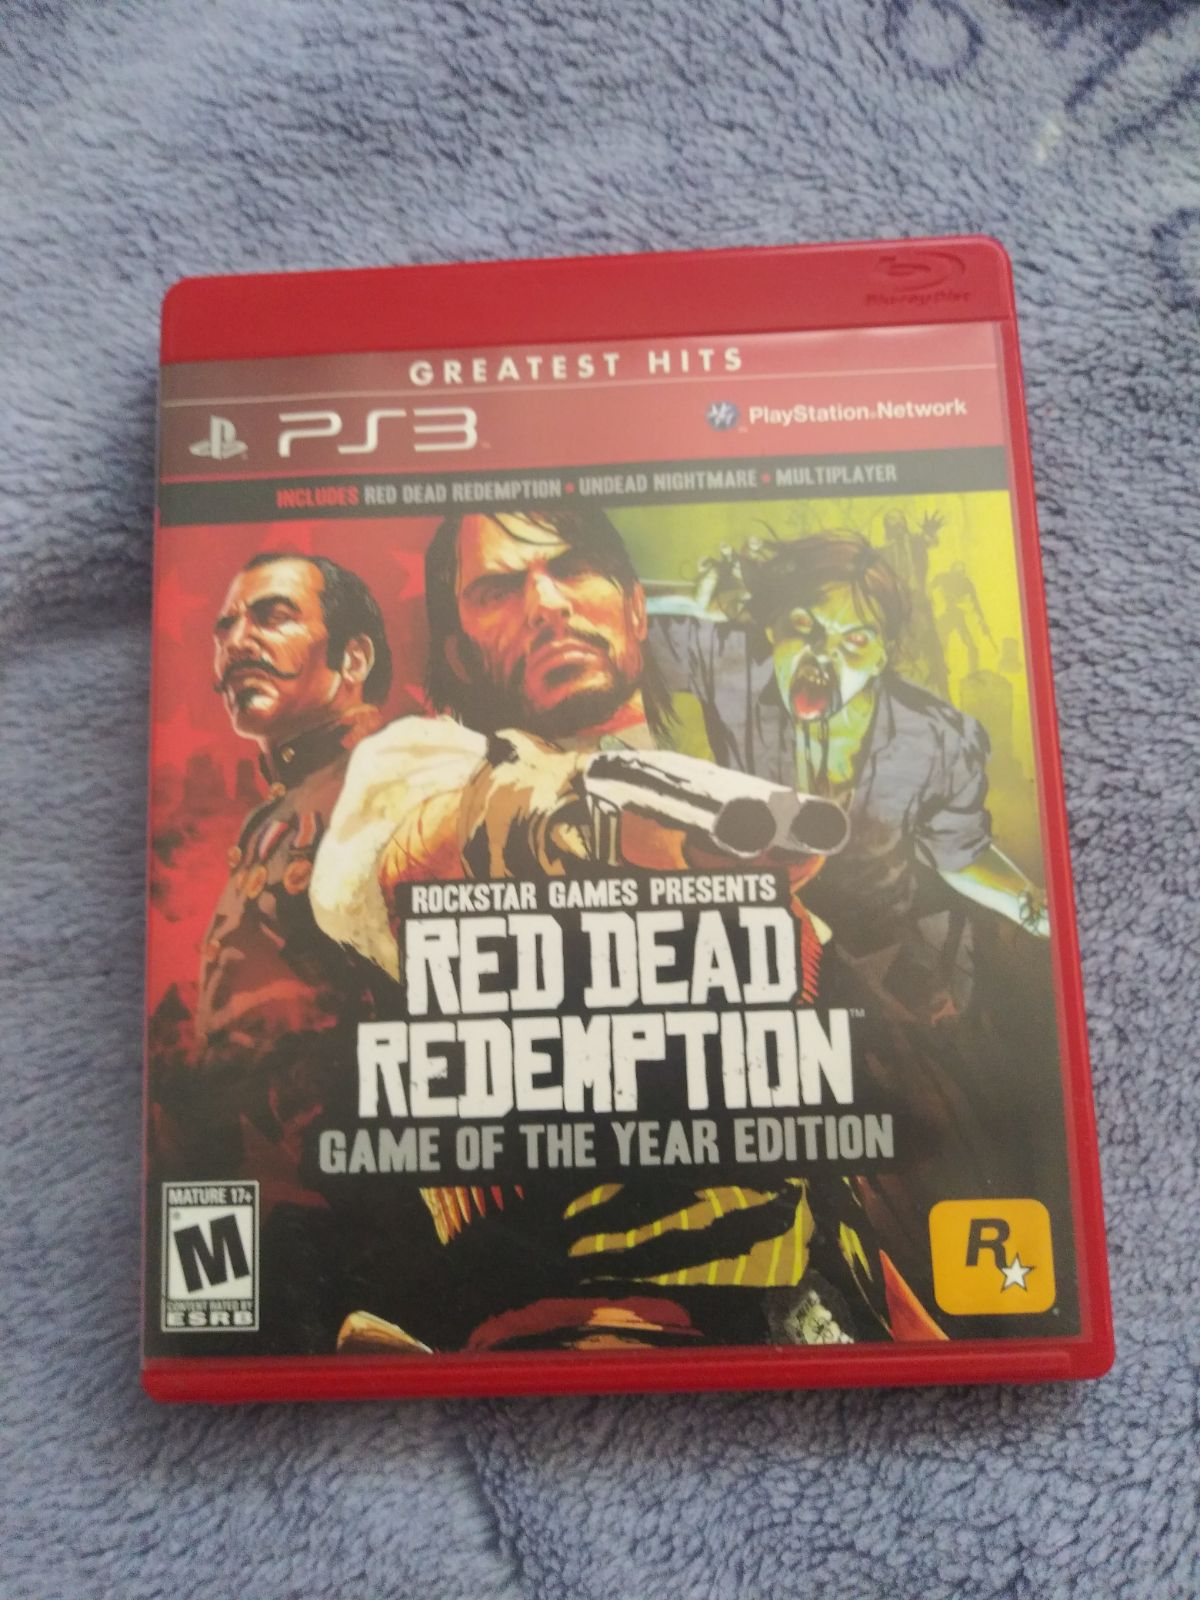 PS3 Red Dead Redemption Game of the Year